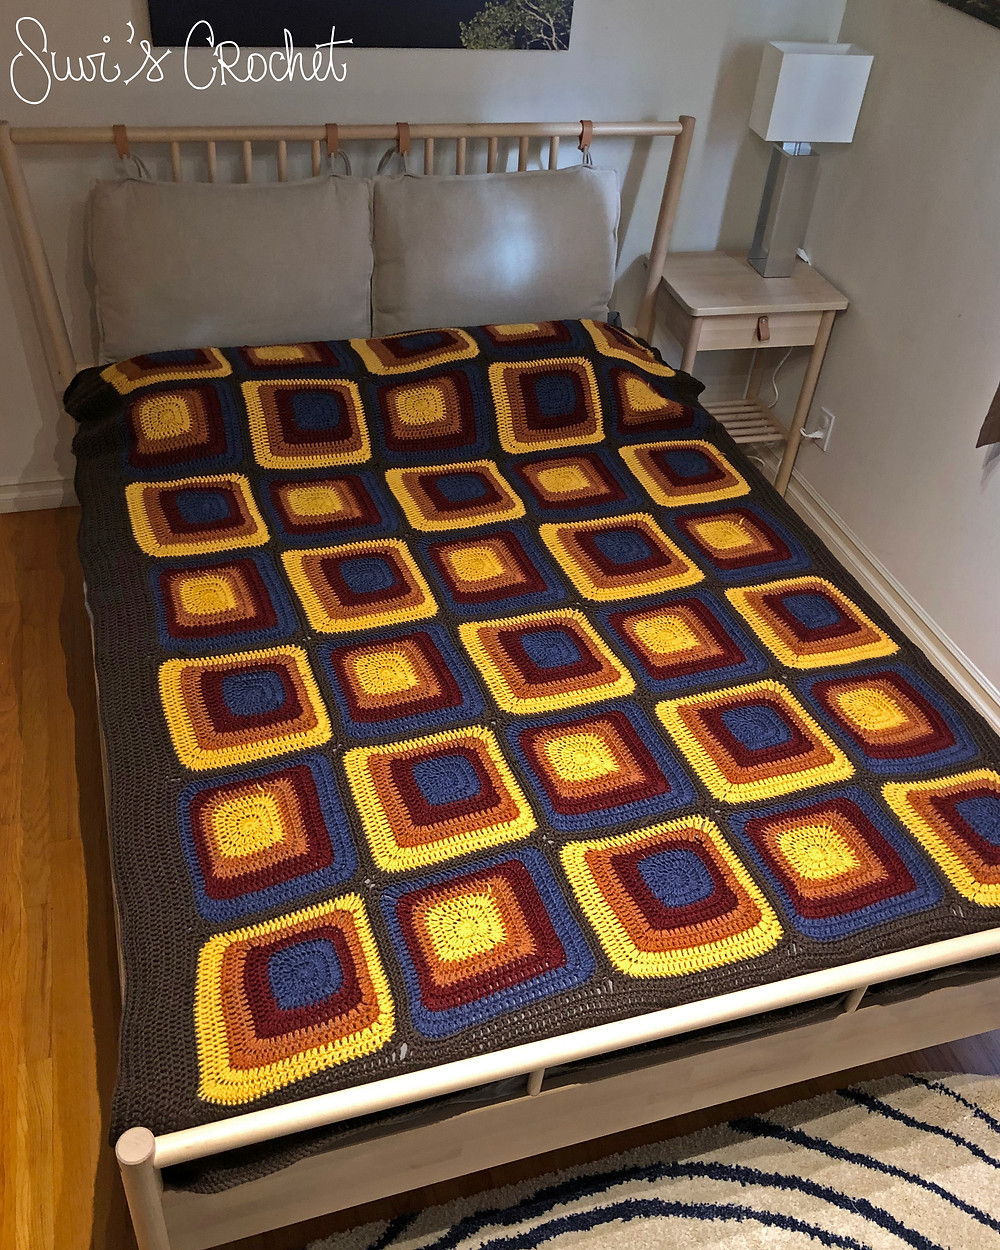 Crocheted Dekoplus squares Afghan or blanket